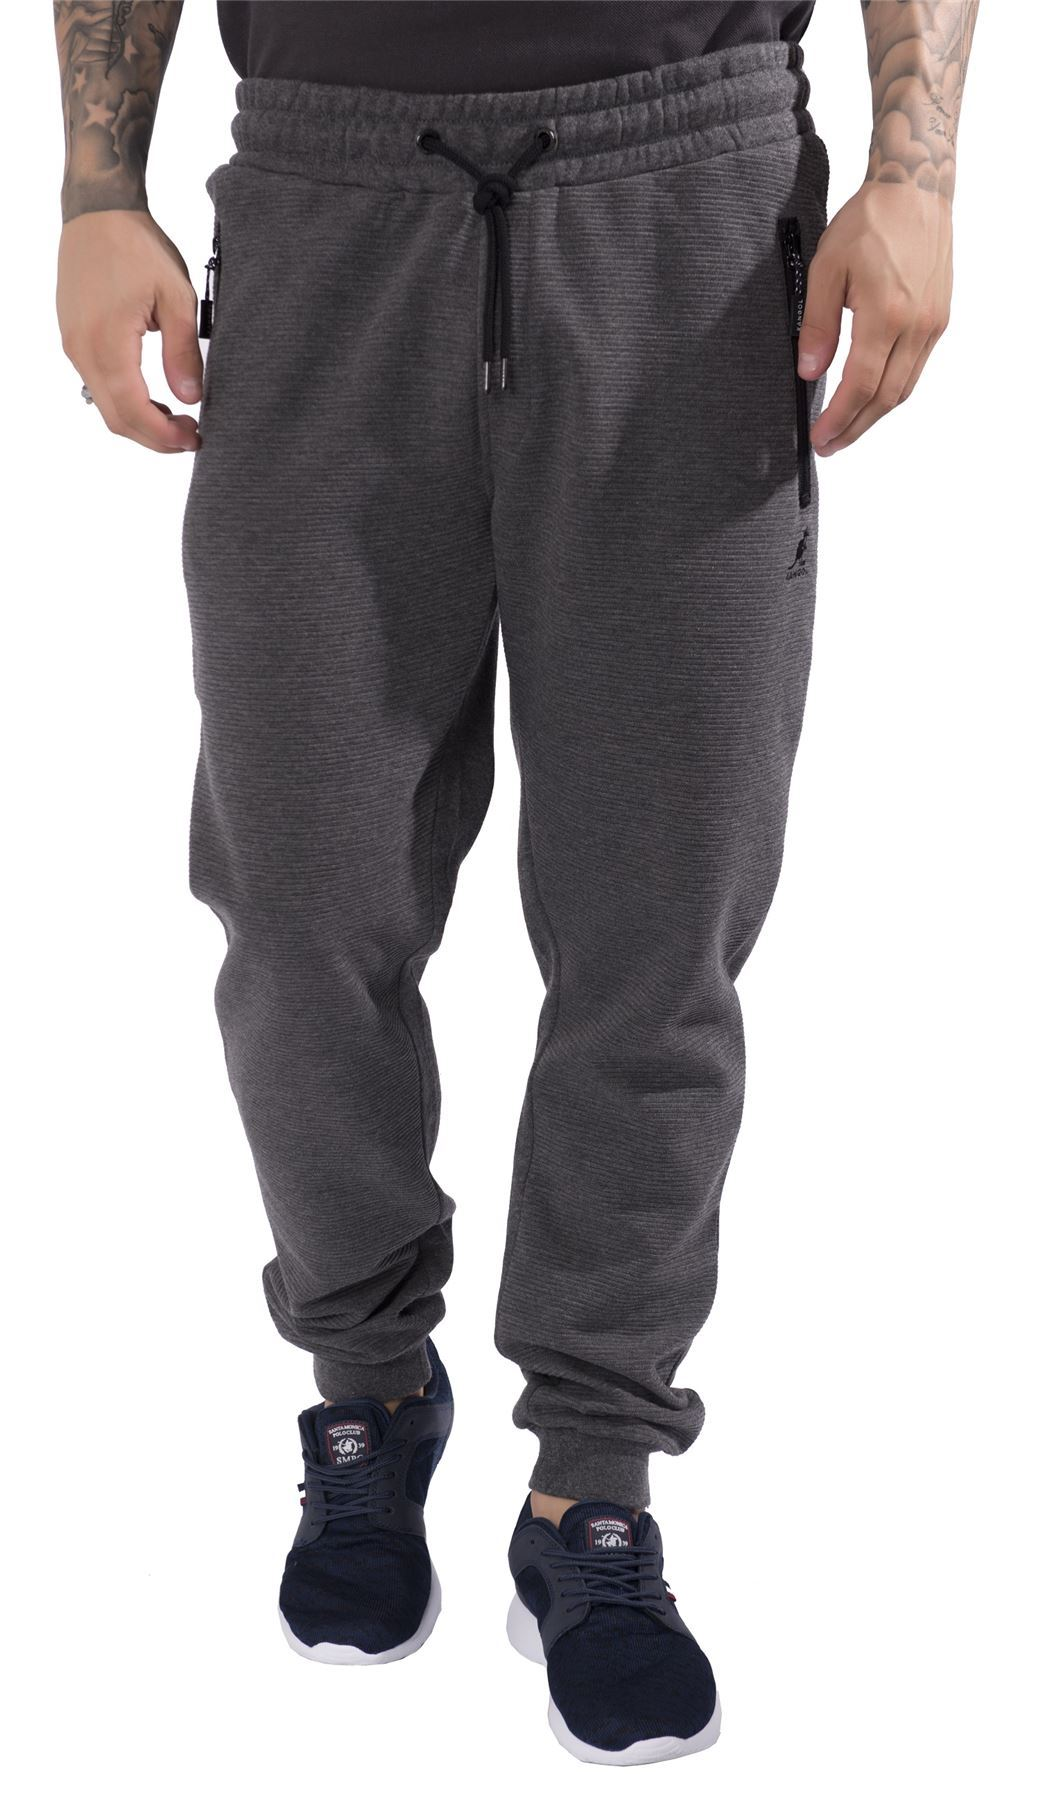 jelly555.ml provides cuffed sweatpants men items from China top selected Men's Pants, Men's Clothing, Apparel suppliers at wholesale prices with worldwide delivery. You can find, Men cuffed sweatpants men free shipping, cuffed sweatpants men and view cuffed sweatpants men reviews to help you choose.